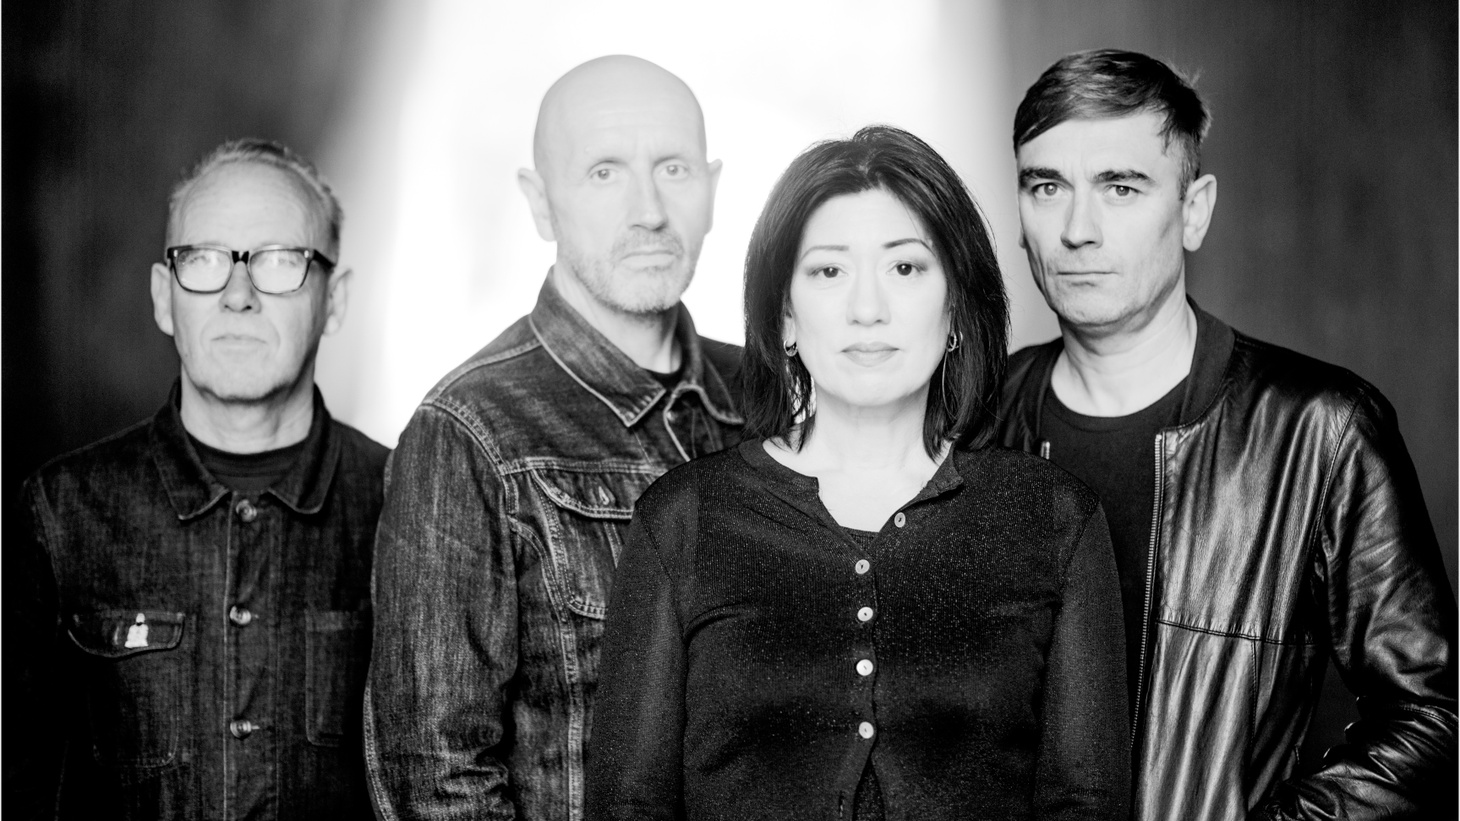 """Named after a missile, Piroshka is also the name for a tangled family tree of musicians from Lush, Moose, Elastica and Modern English. Their first projectile is """"Everlastingly Yours."""""""